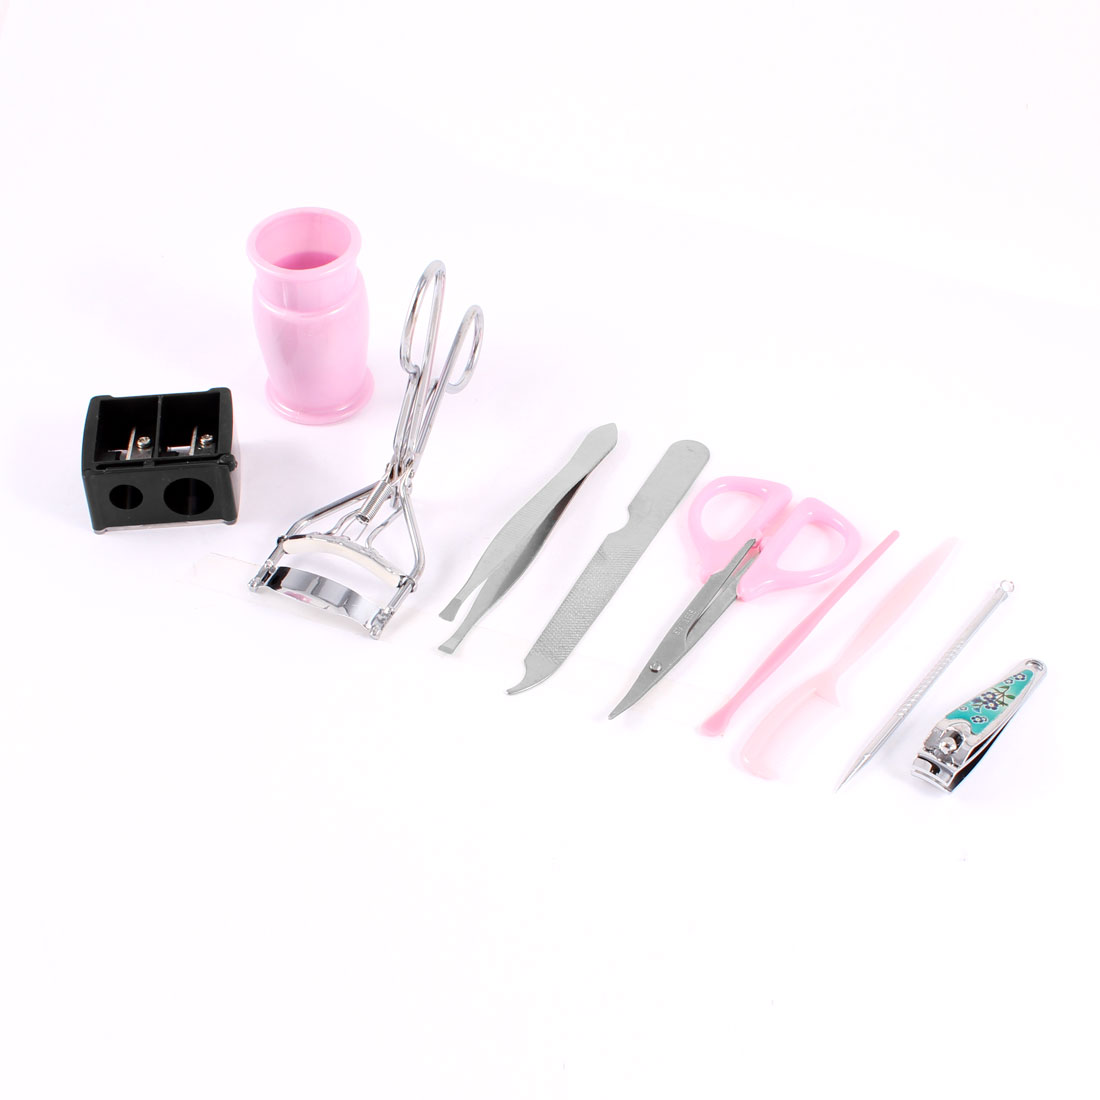 9 in 1 Nail File Eyebrow Scissors Eye Lash Curler Beauty Tools Set Pink